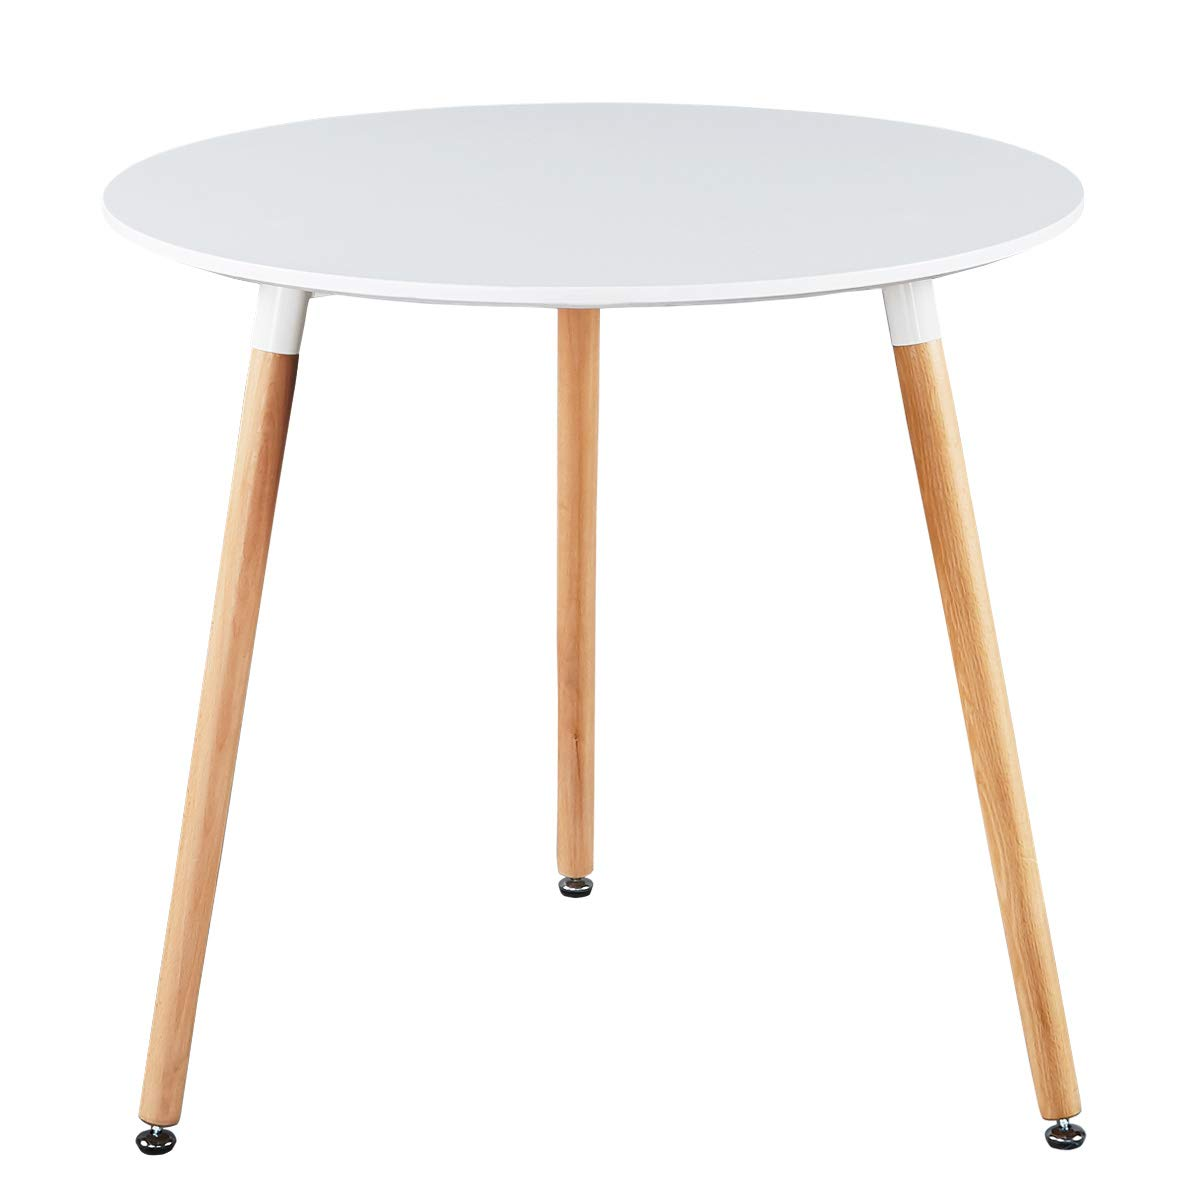 5. GreenForest White Dining Table